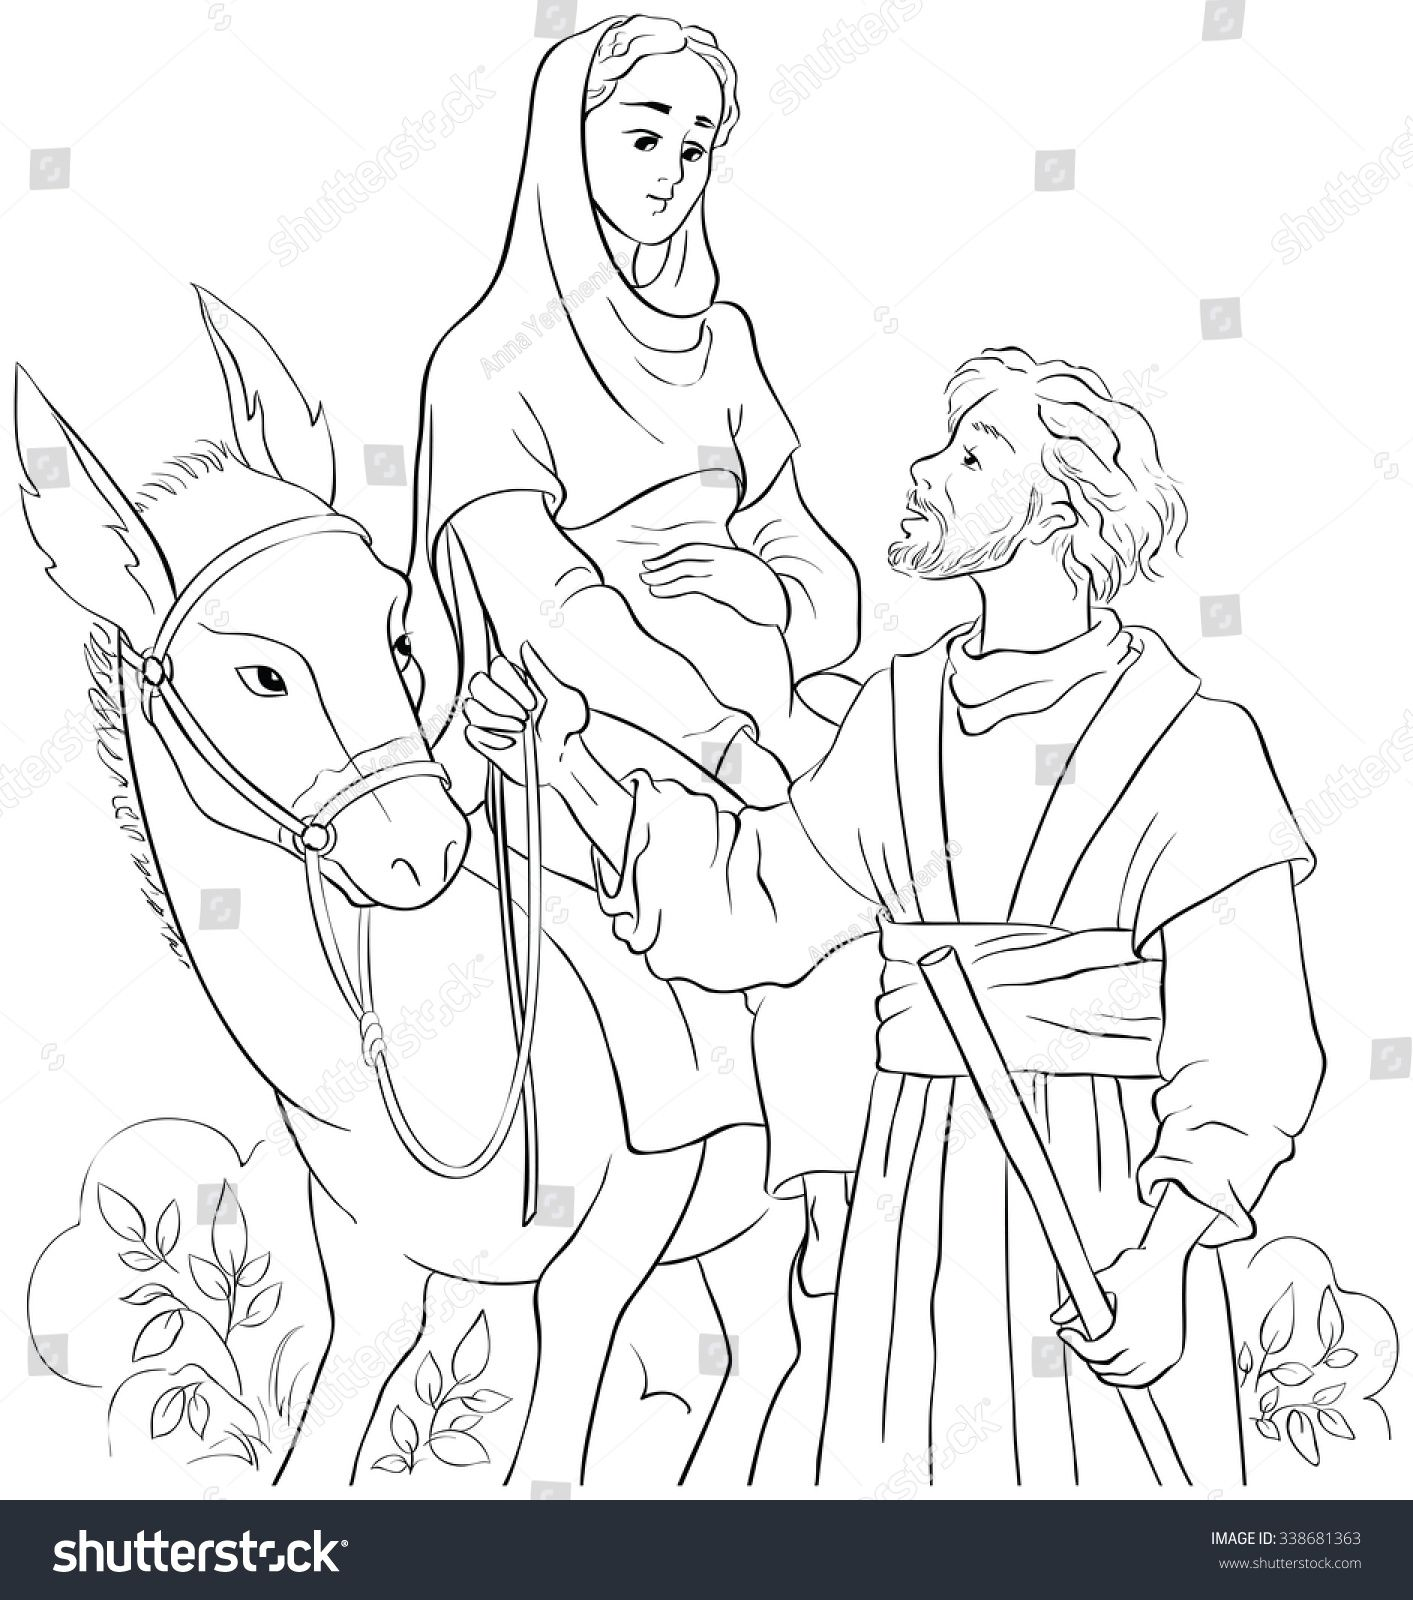 Mary and Joseph travelling by donkey to Bethlehem. Coloring page